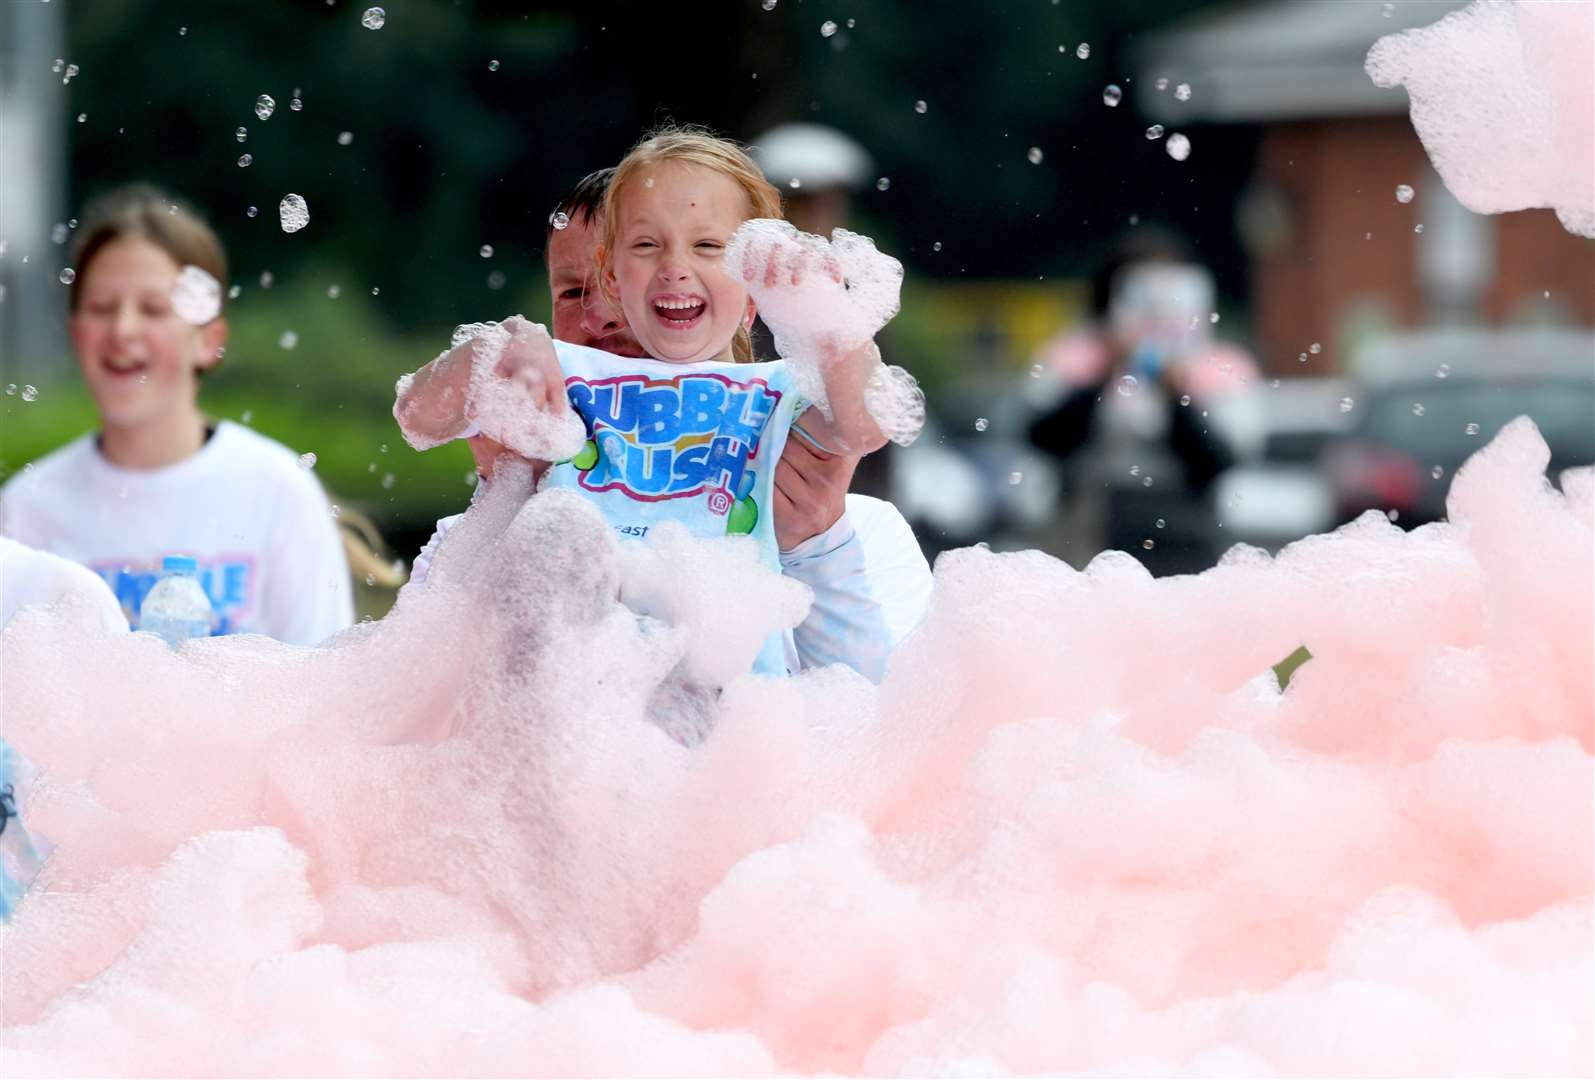 Bubble Rush at The Walks in Kings Lynn. MLNF-21AF09591